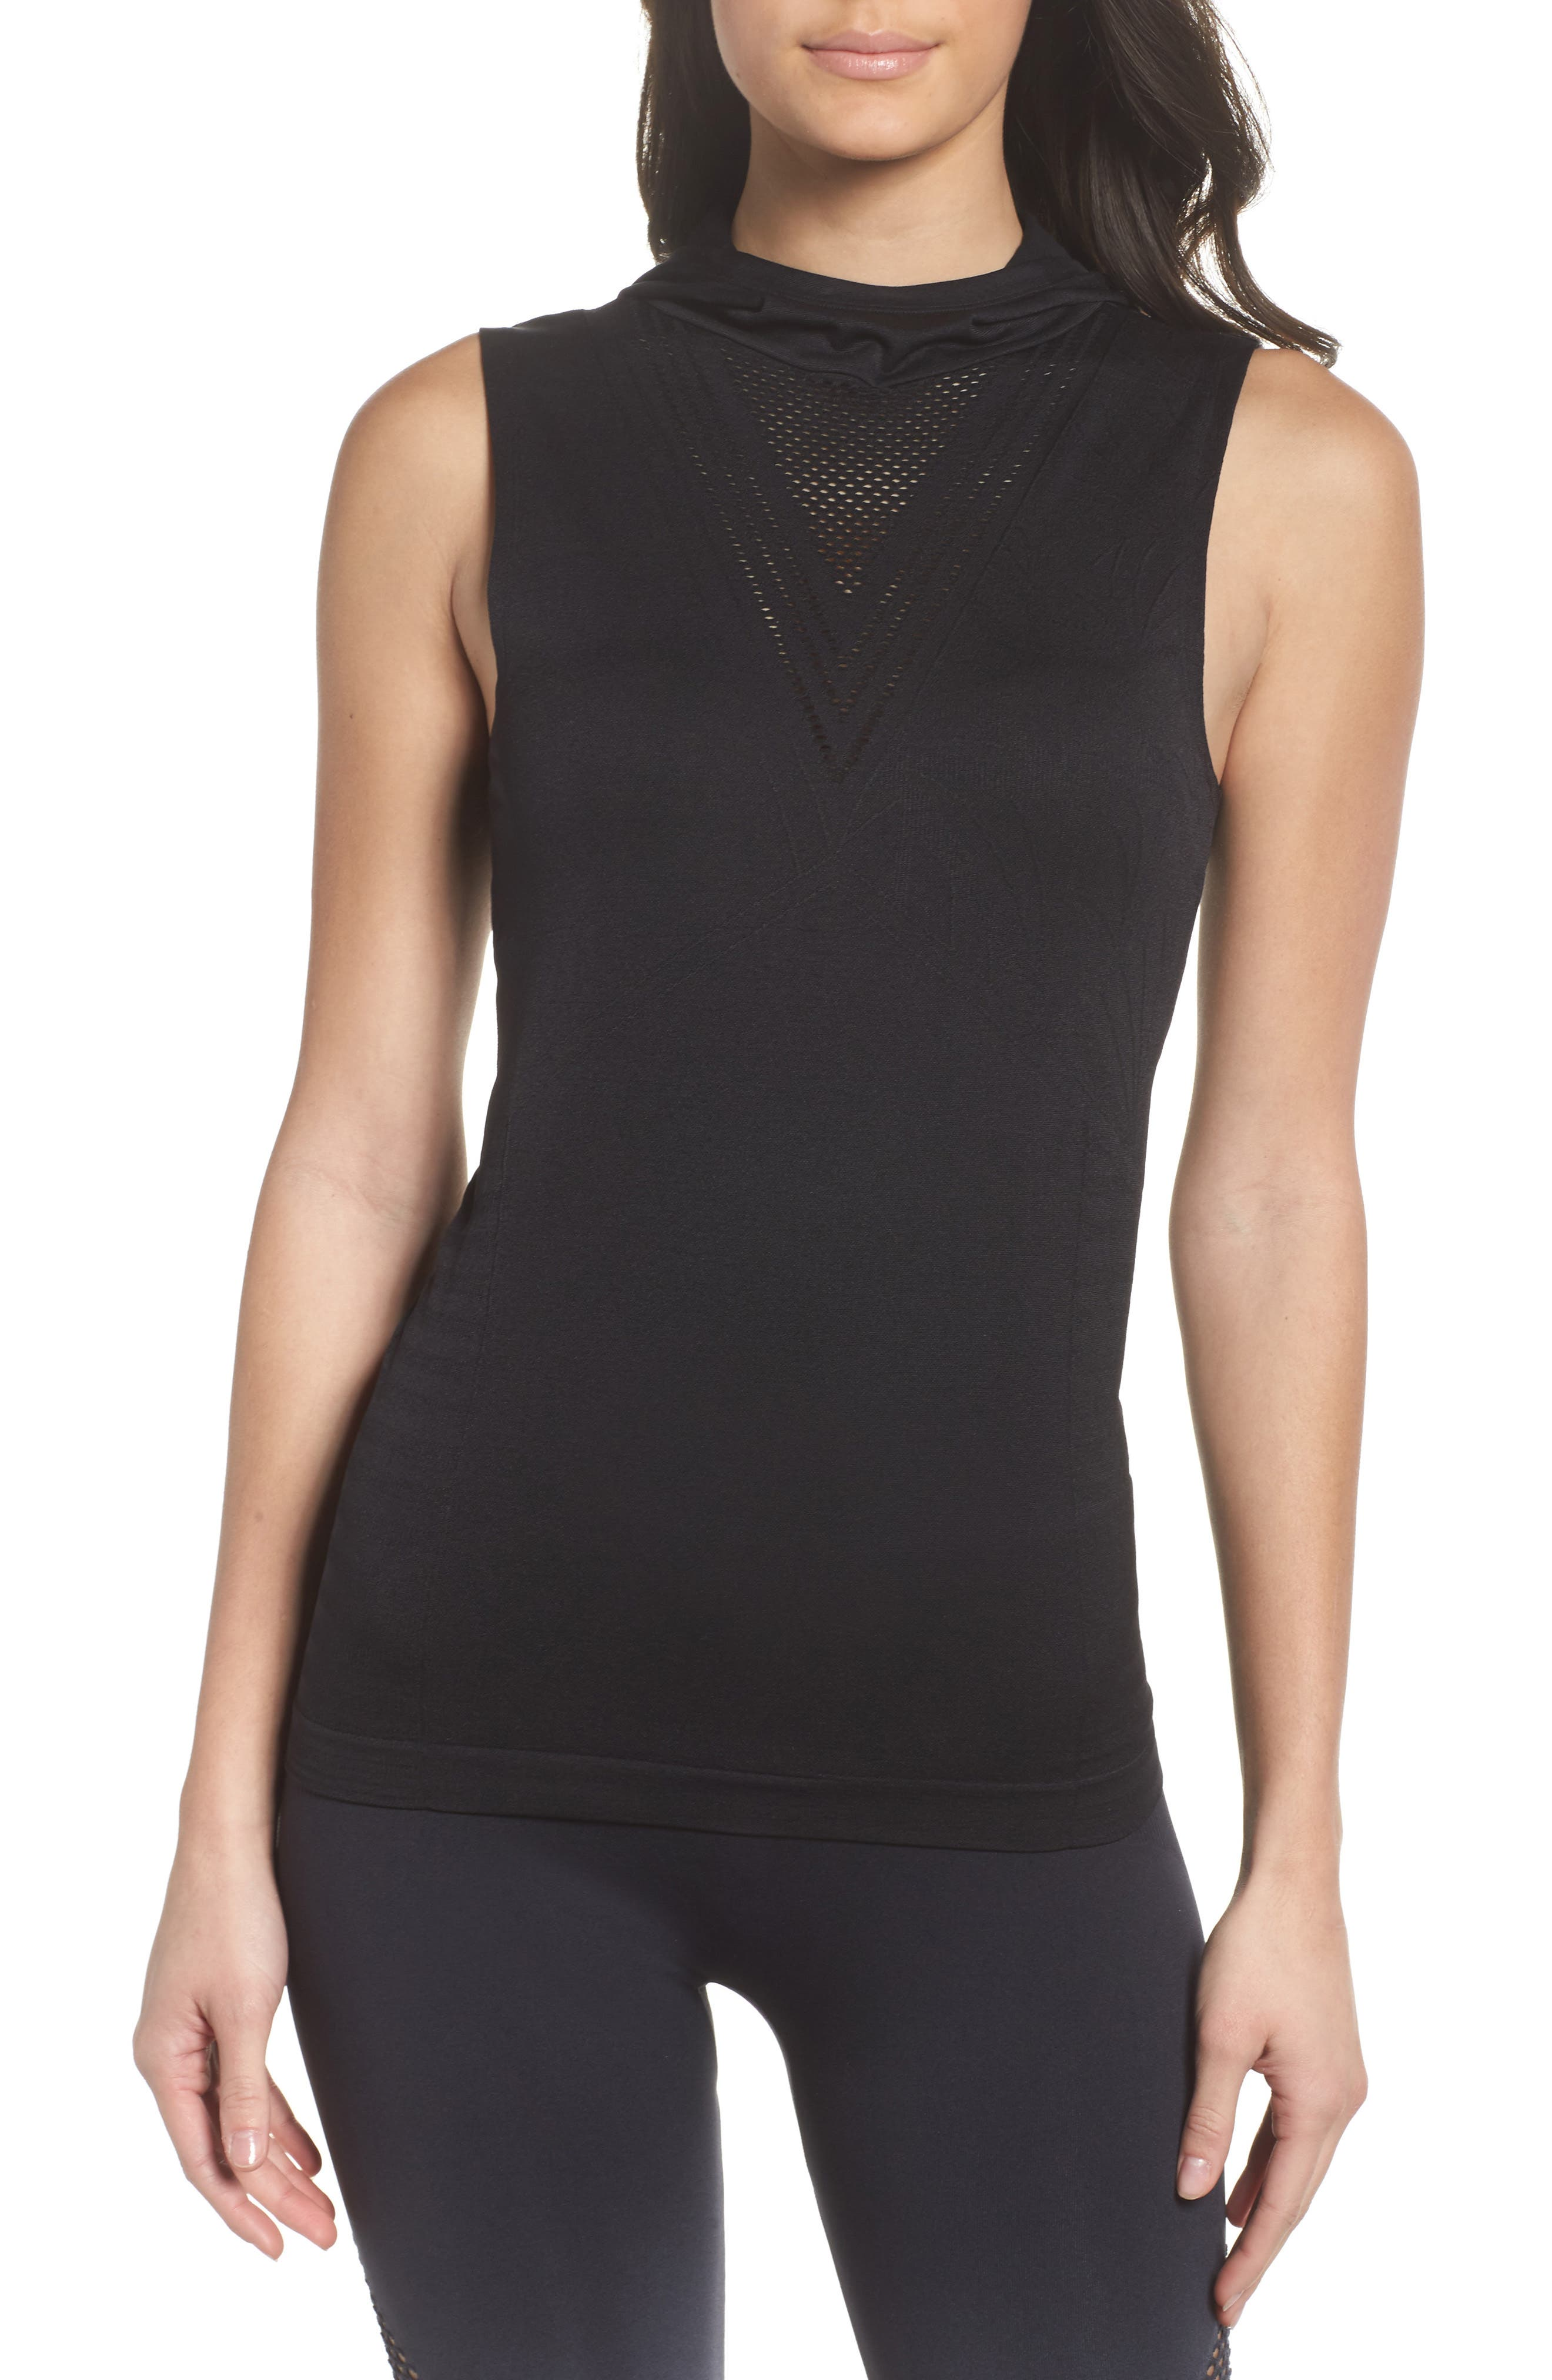 CLIMAWEAR,                             Velocity Sleeveless Hoodie,                             Main thumbnail 1, color,                             001